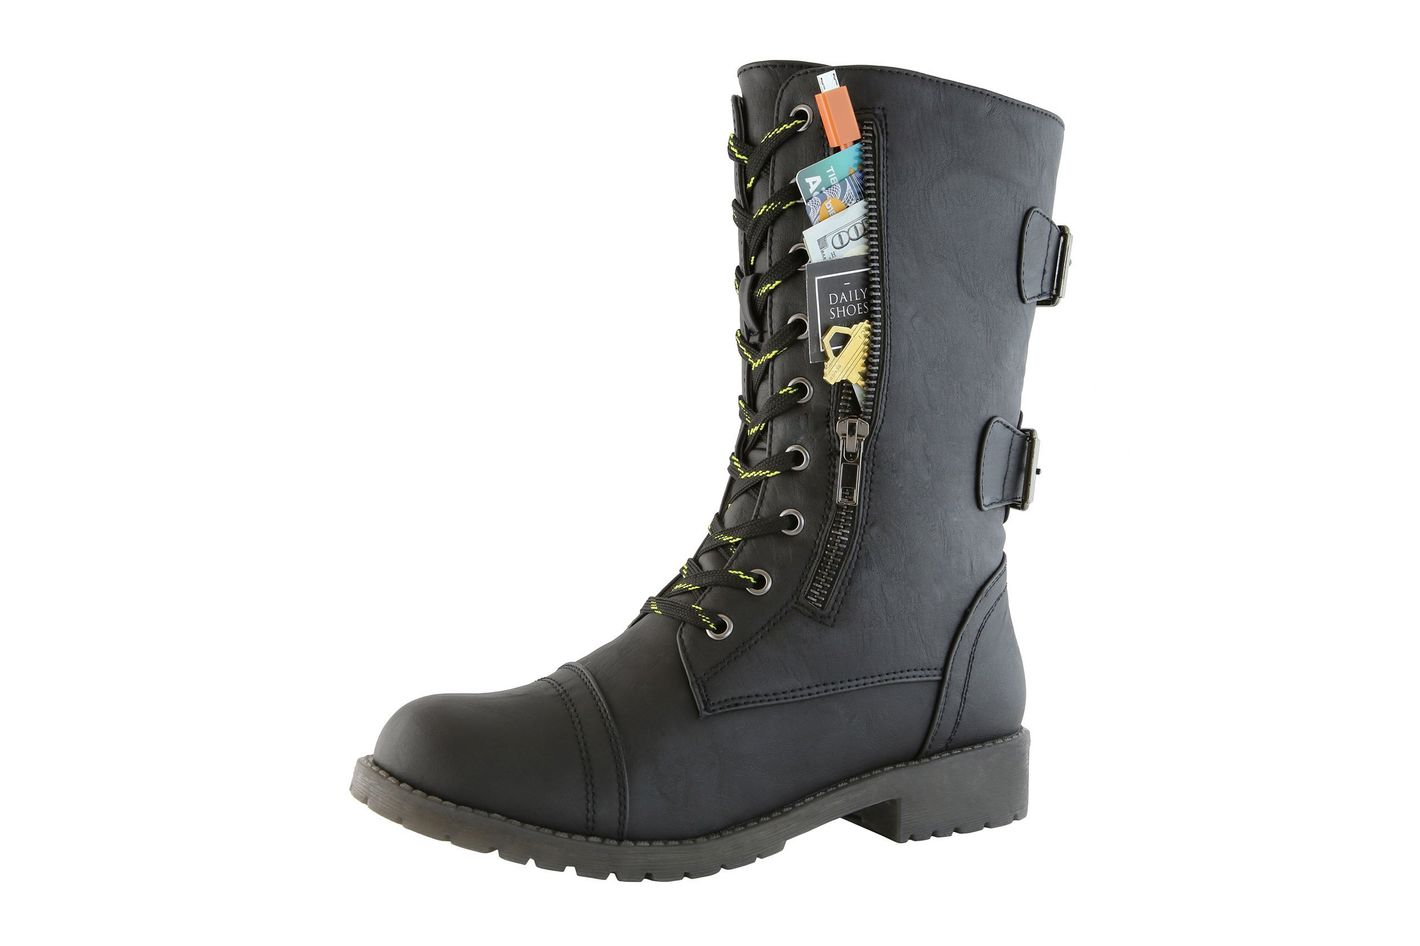 ef3f146b156ba Daily Shoes Women s Combat Lace-up Mid-Calf Pocket Boots